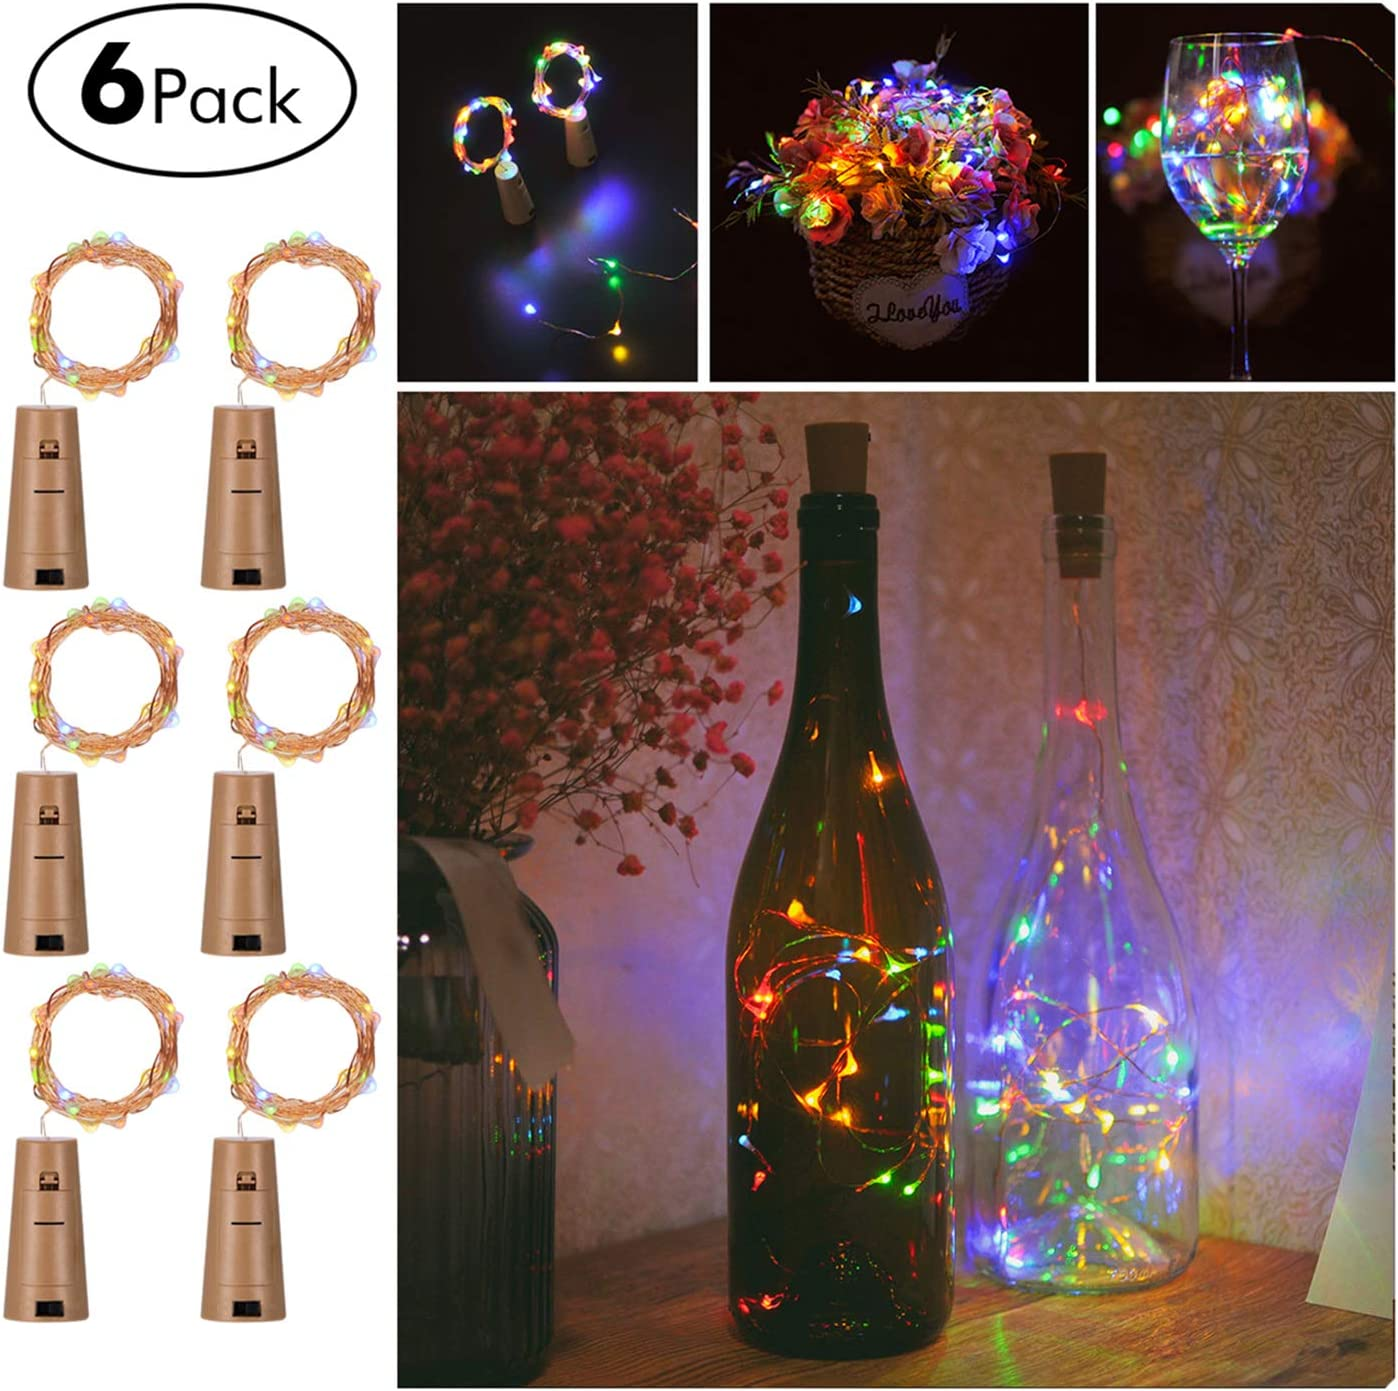 6 Pack Wine Bottles Cork String Lights,Crytech 20Leds Battery Powered Fairy Mini String Lights Decorations for Bedroom Patio Garden Wedding Halloween Christmas Party Warm White